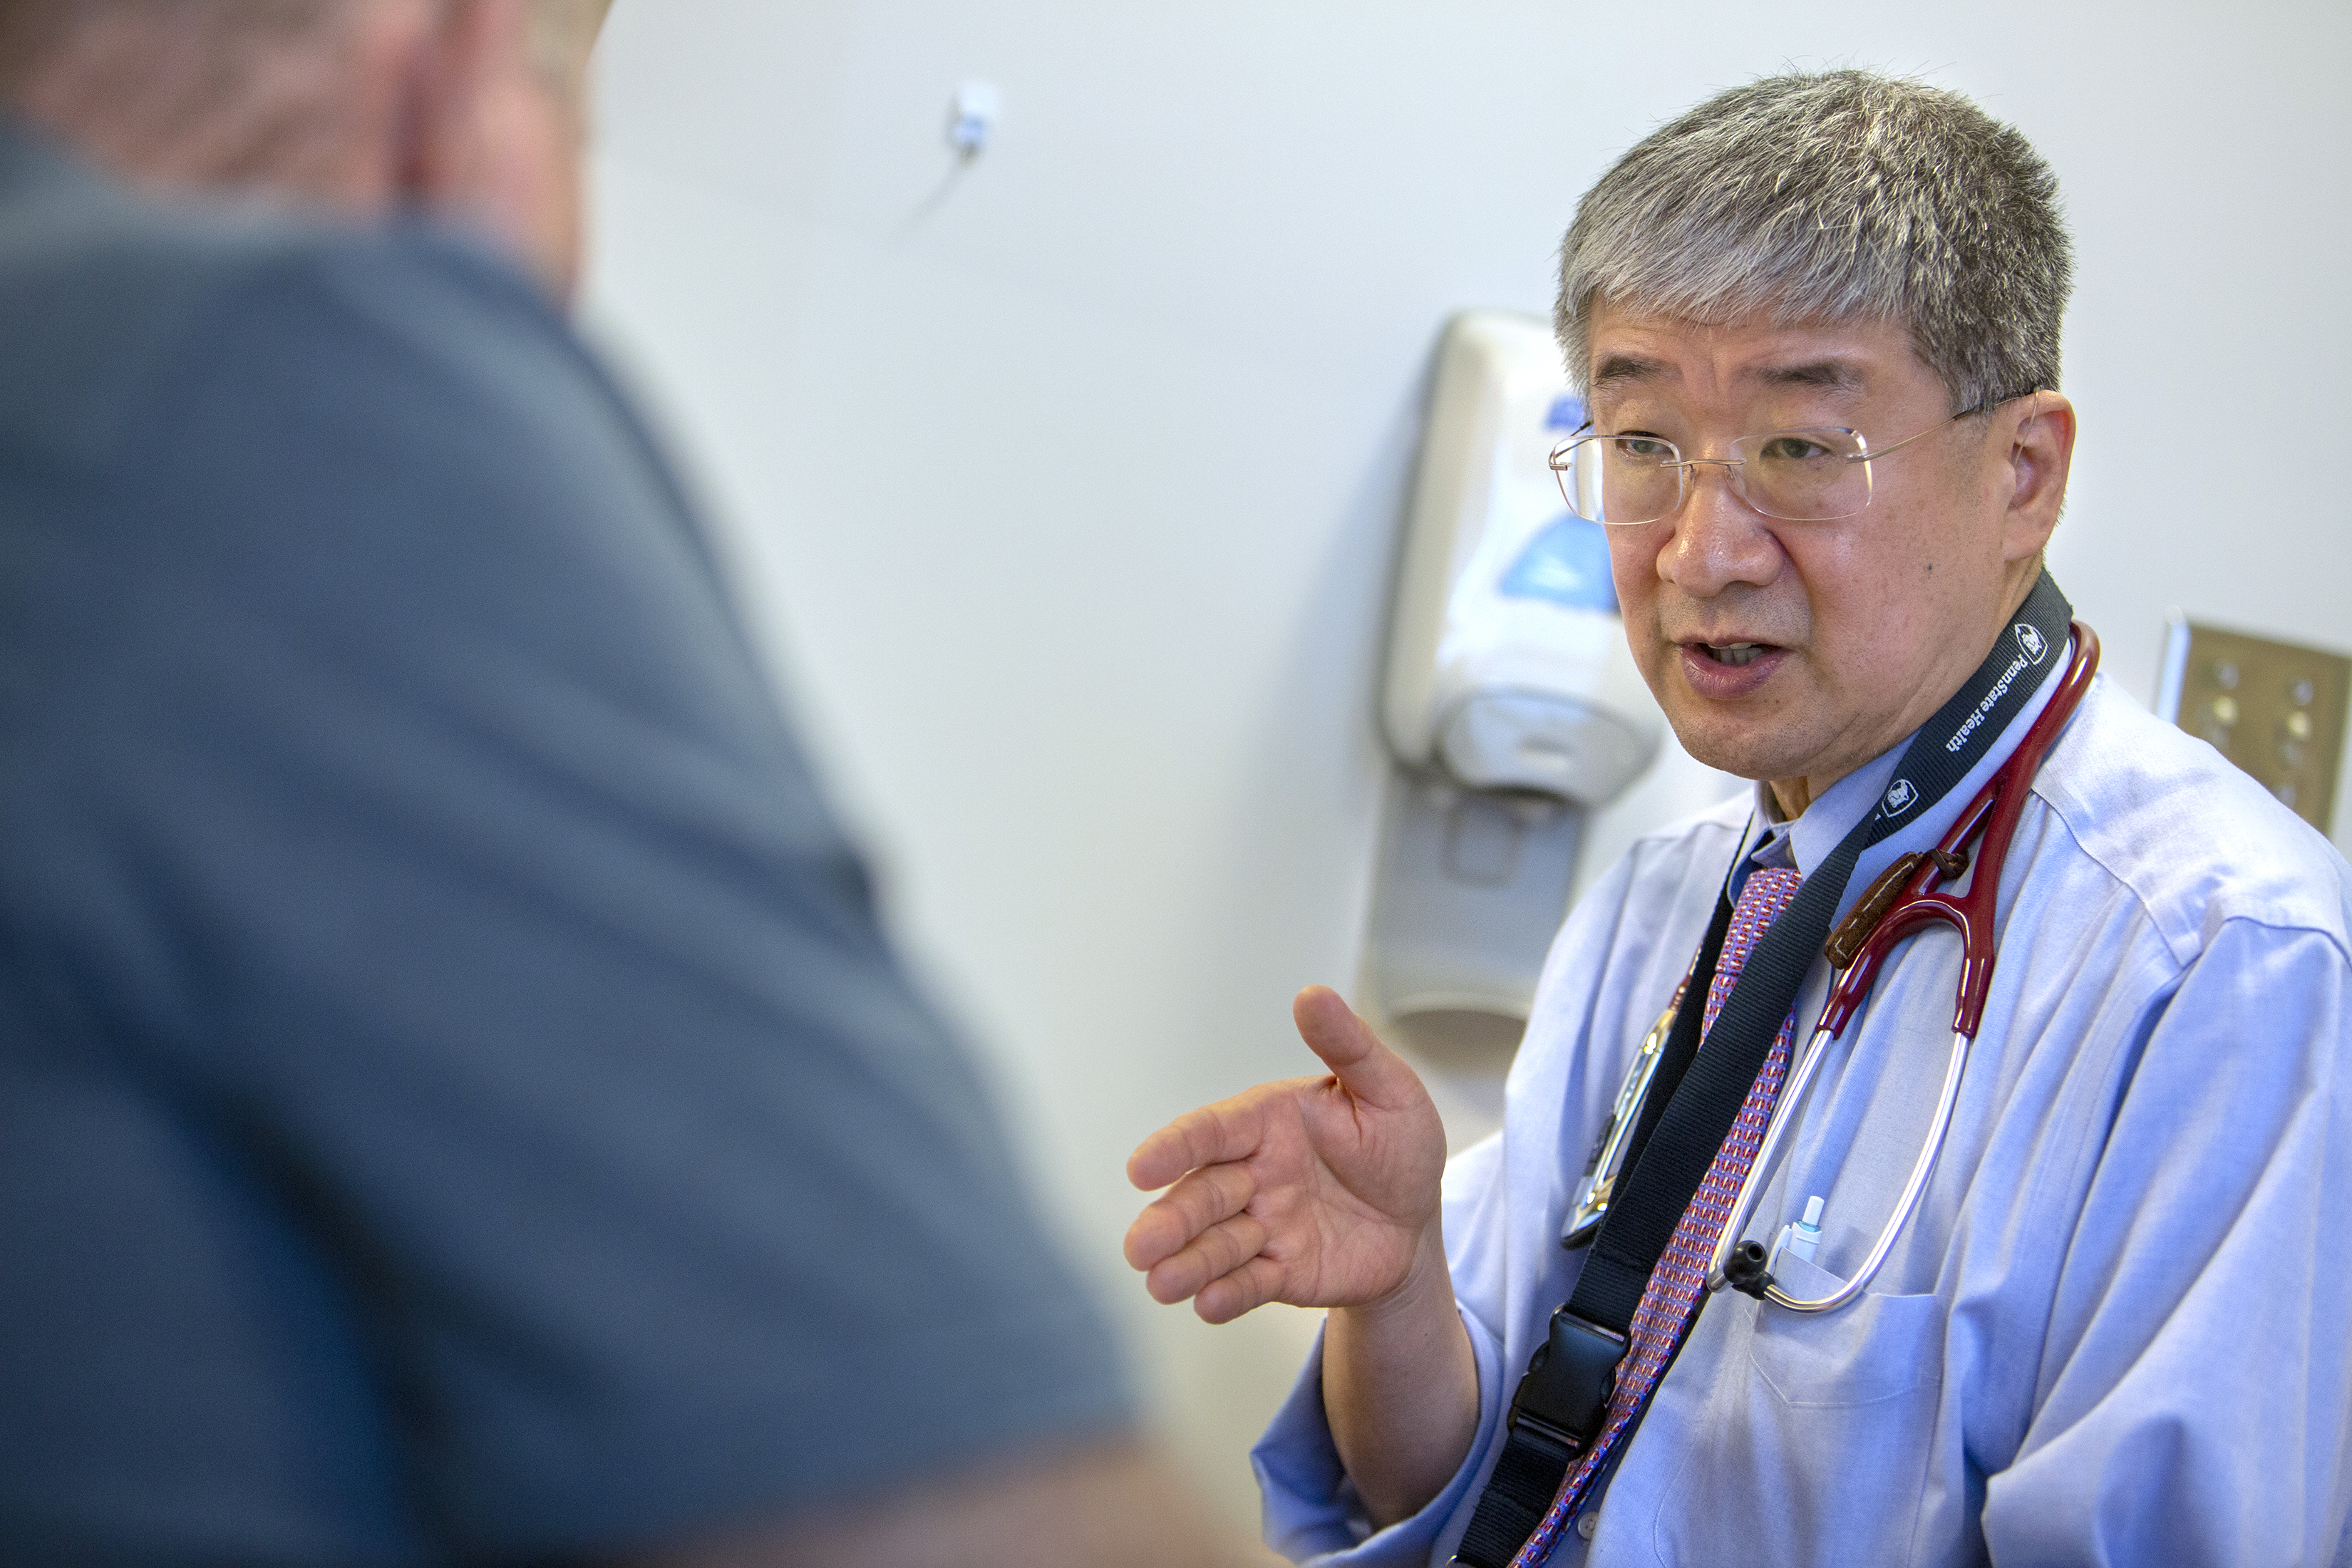 Dr. Shin Mineishi of Penn State Cancer Institute gestures while talking to an older male patient in an exam room. He is wearing a stethoscope around his neck, a shirt, tie, a lanyard and glasses. Behind him is a hand sanitizer machine. The patient is out of focus, and his head and right shoulder are visible.